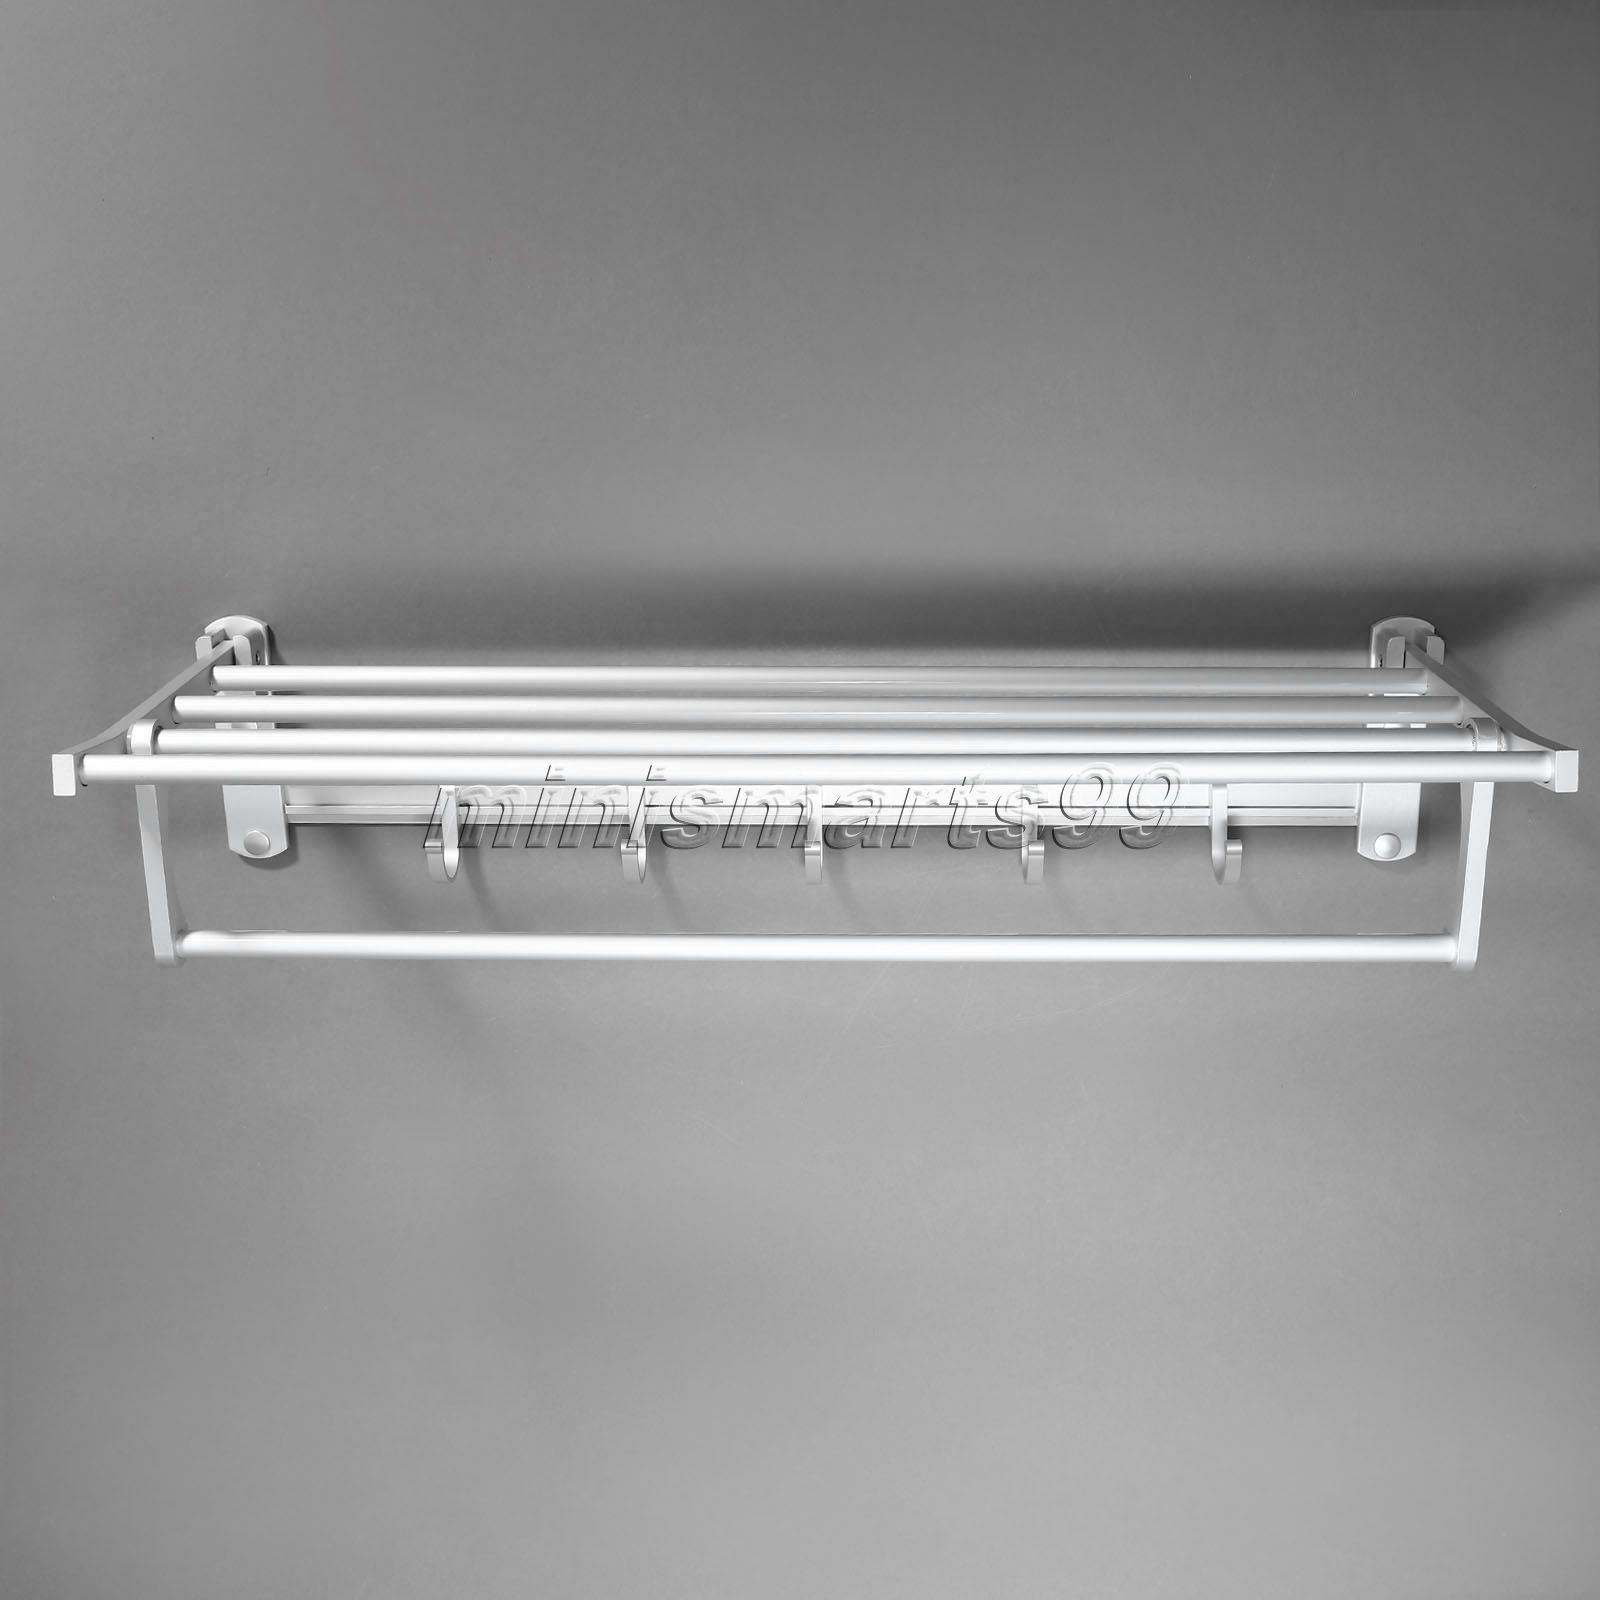 Bathroom Towel Corner Shelves Holders Aluminum Wall Mounted Bathroom ...